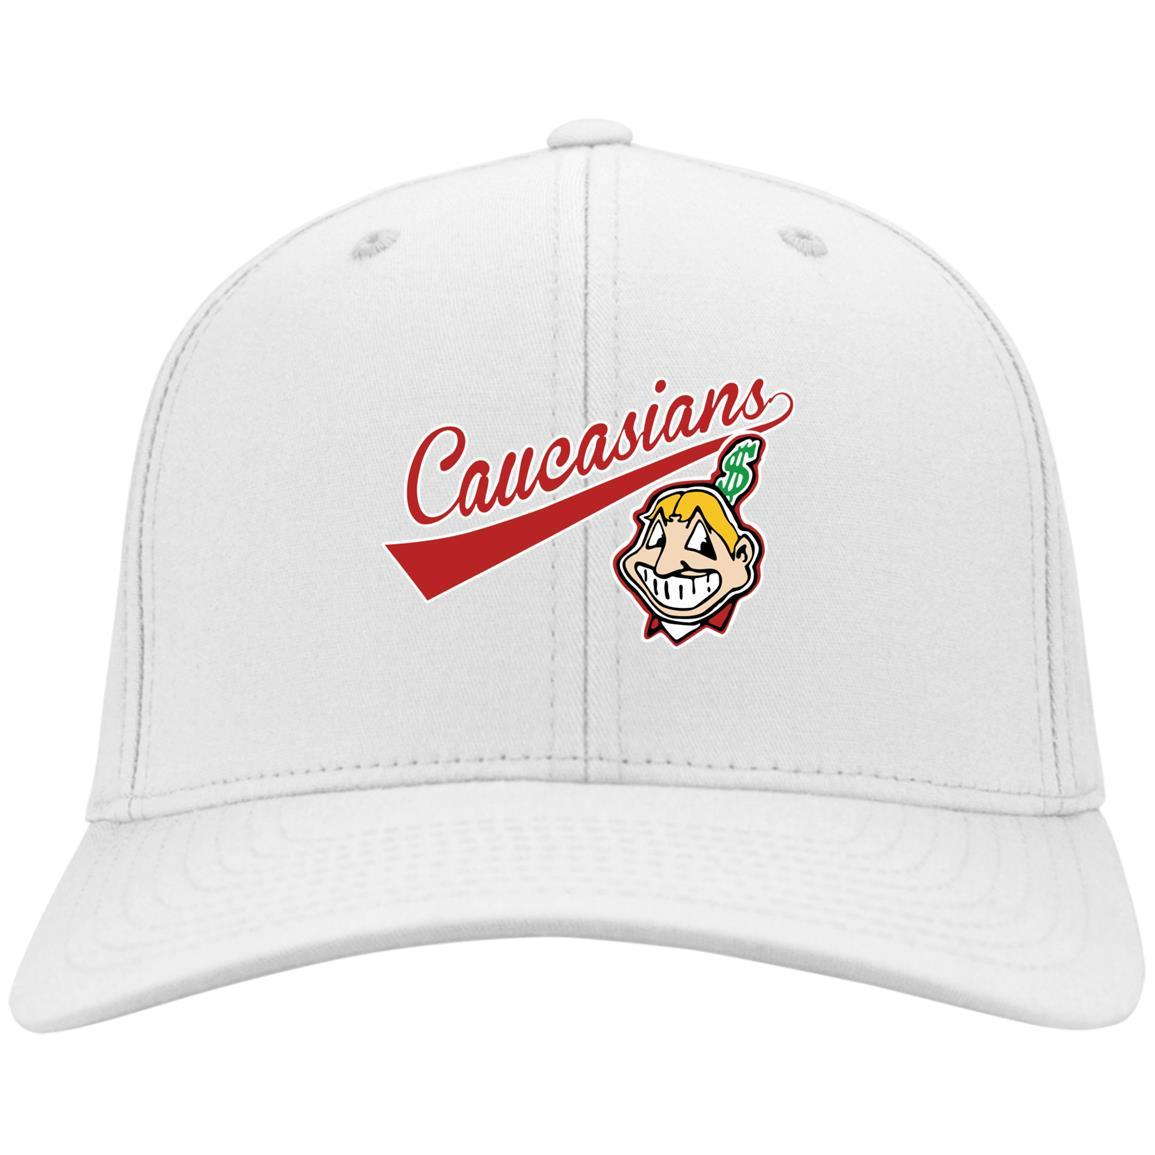 Cleveland Caucasians Native Go Indians – Port & Co. Twill Cap